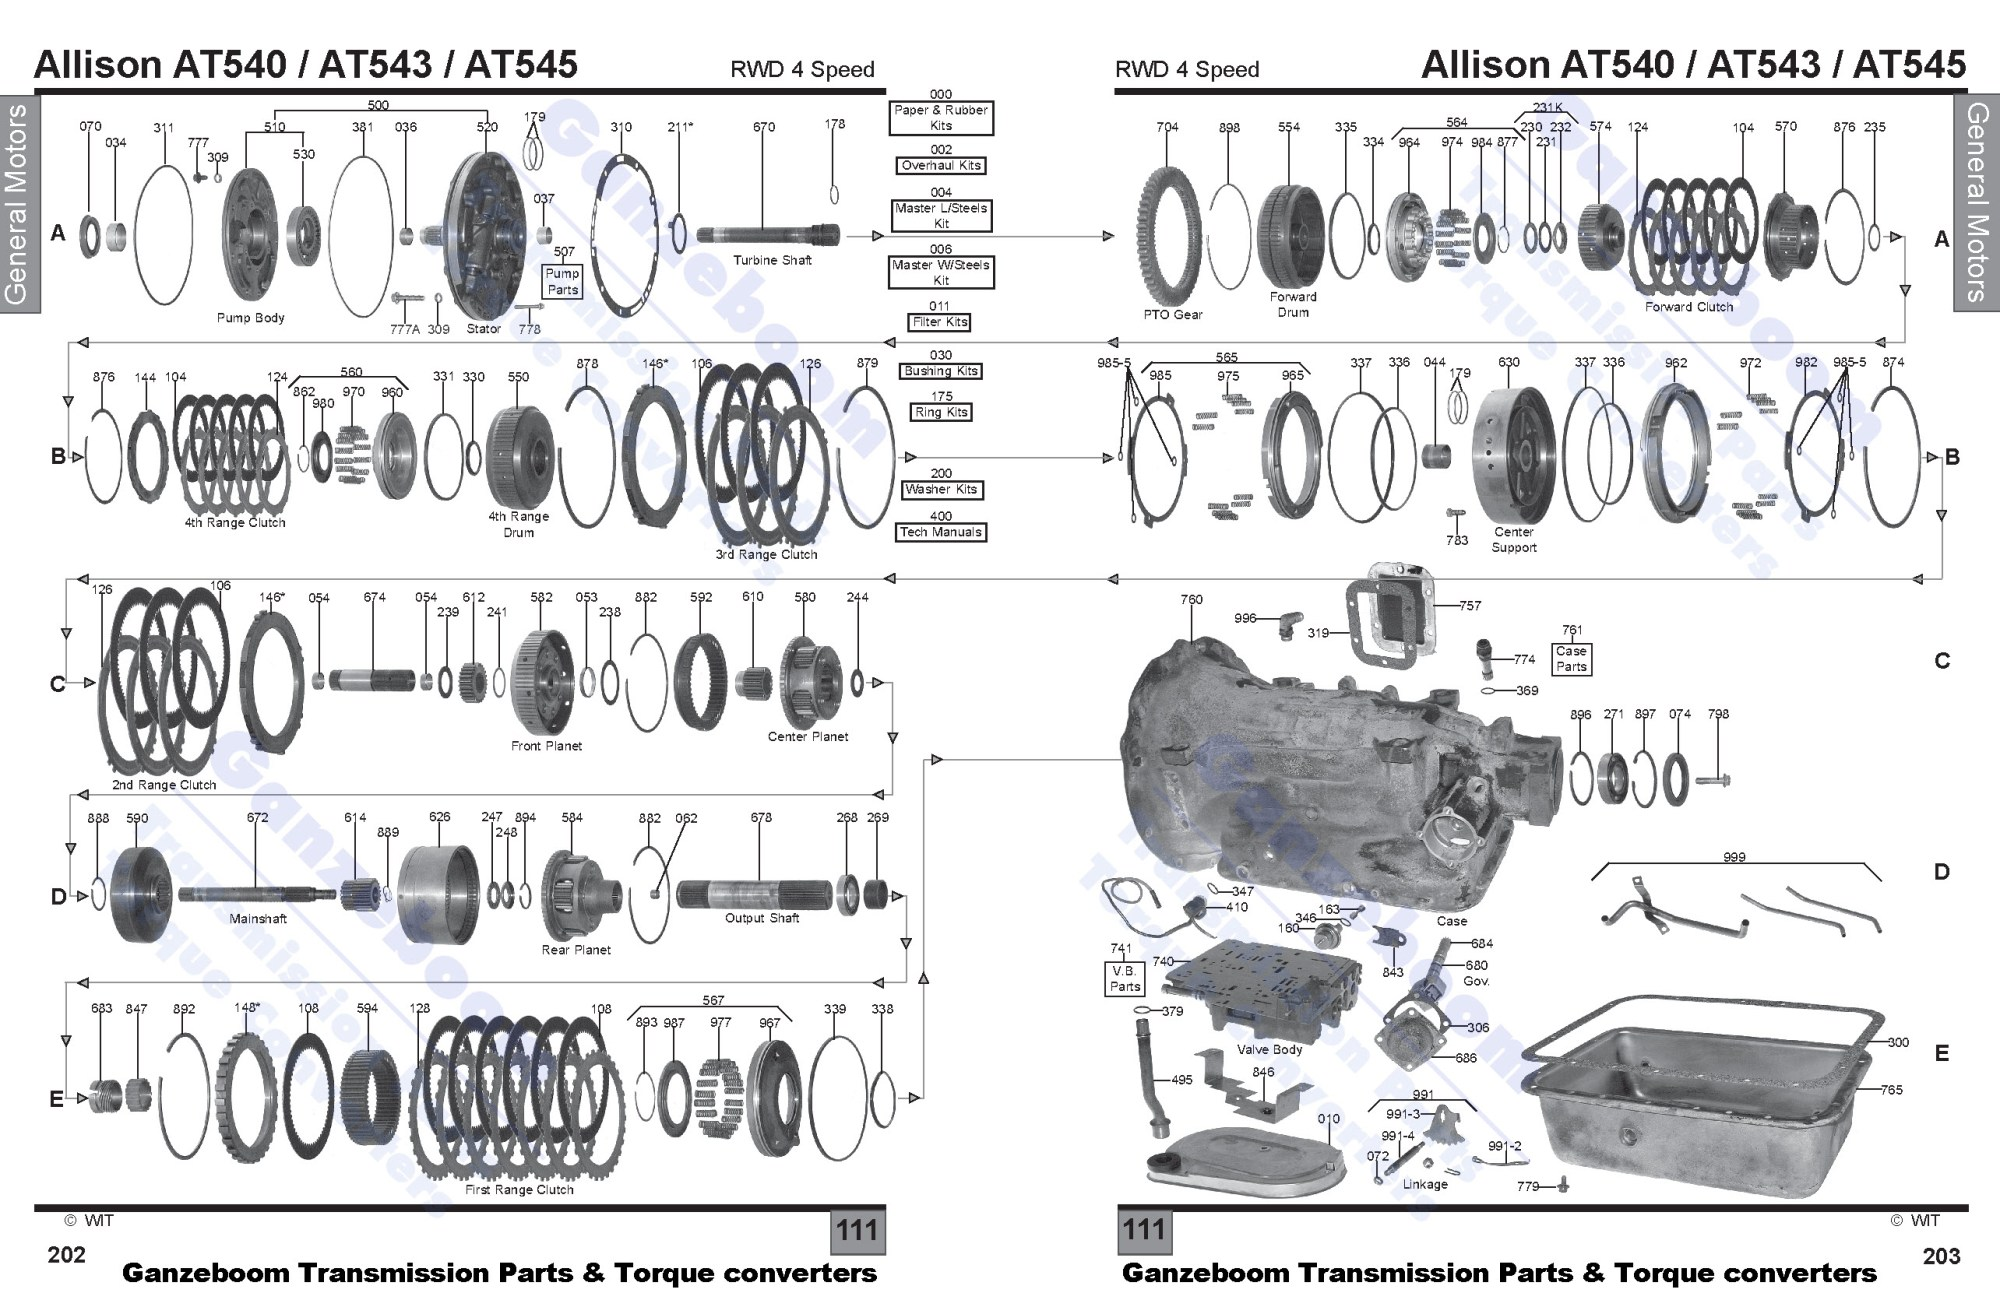 hight resolution of general motors ganzeboom allison transmission at545 repair manual allison at545 diagram